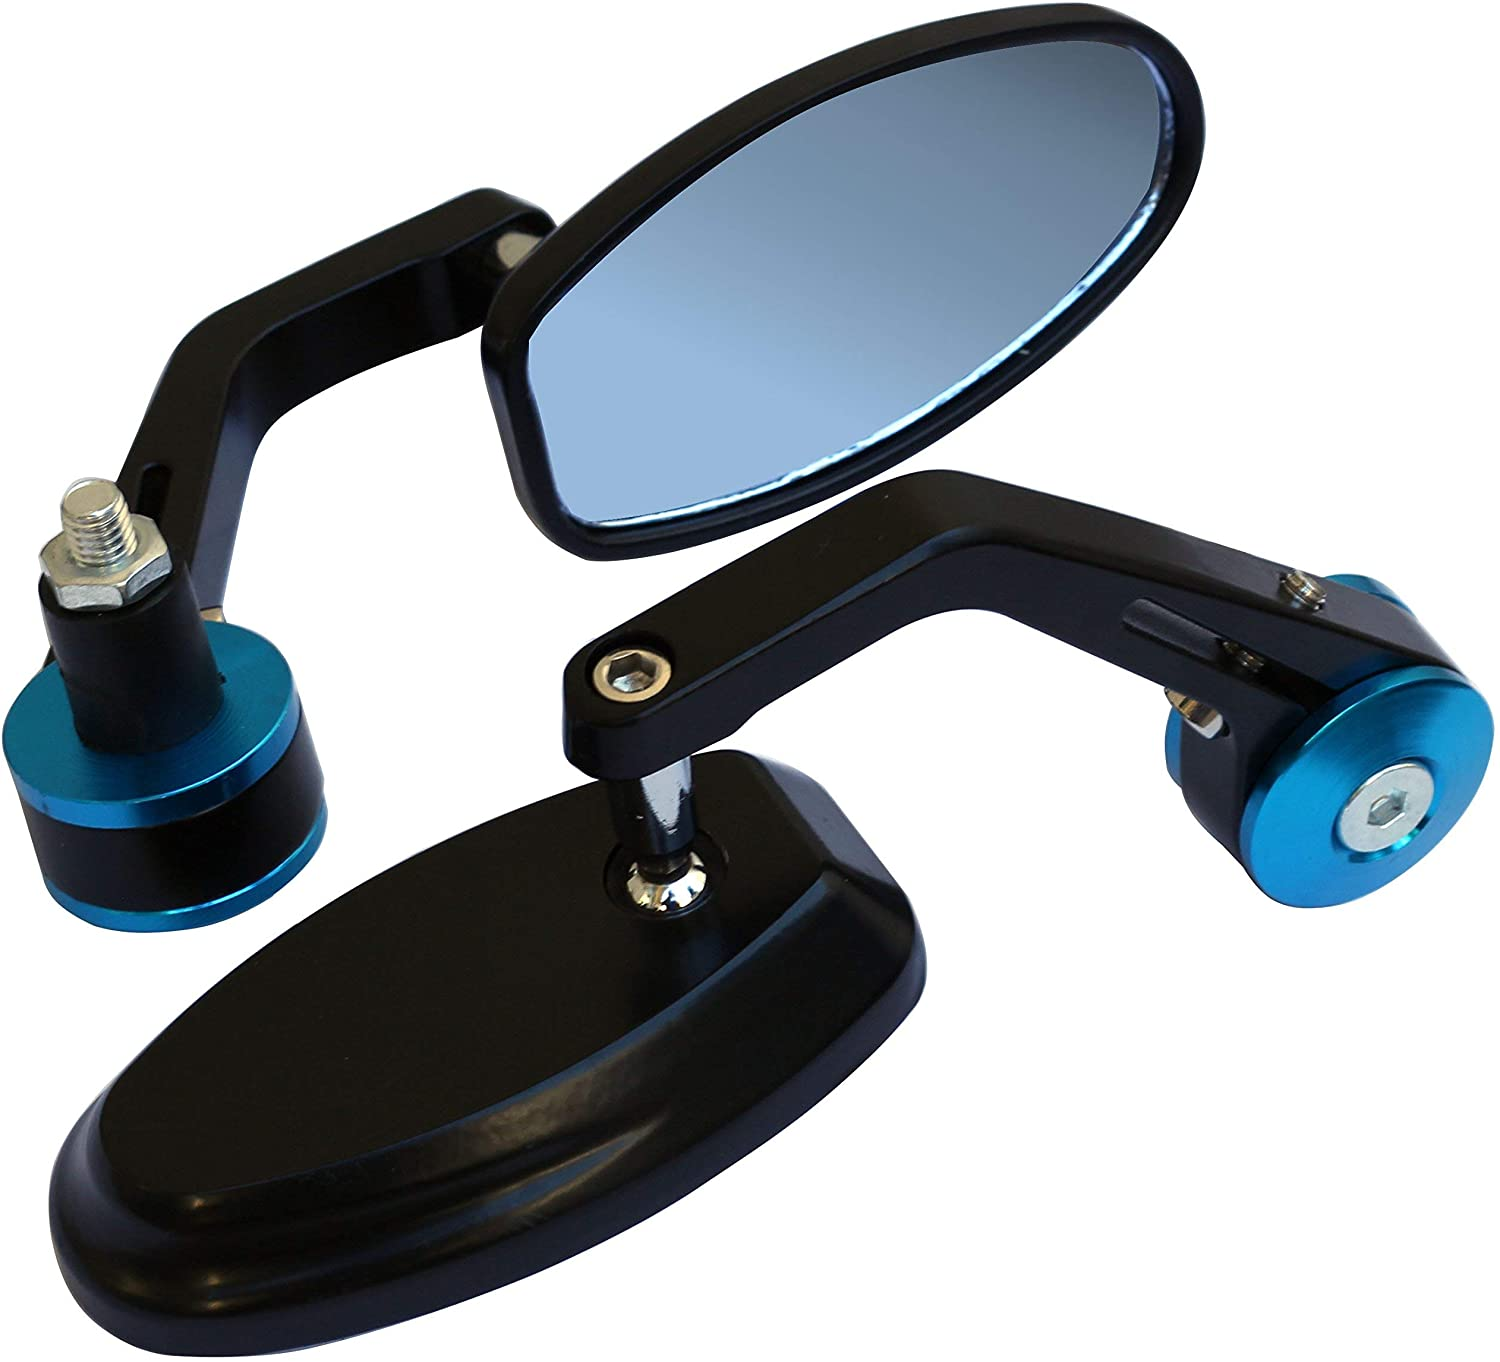 MotorToGo Black Reverse Retro Bar End View Mirrors with Blue Adapter Cover for 2008 Buell Lightning XB12S